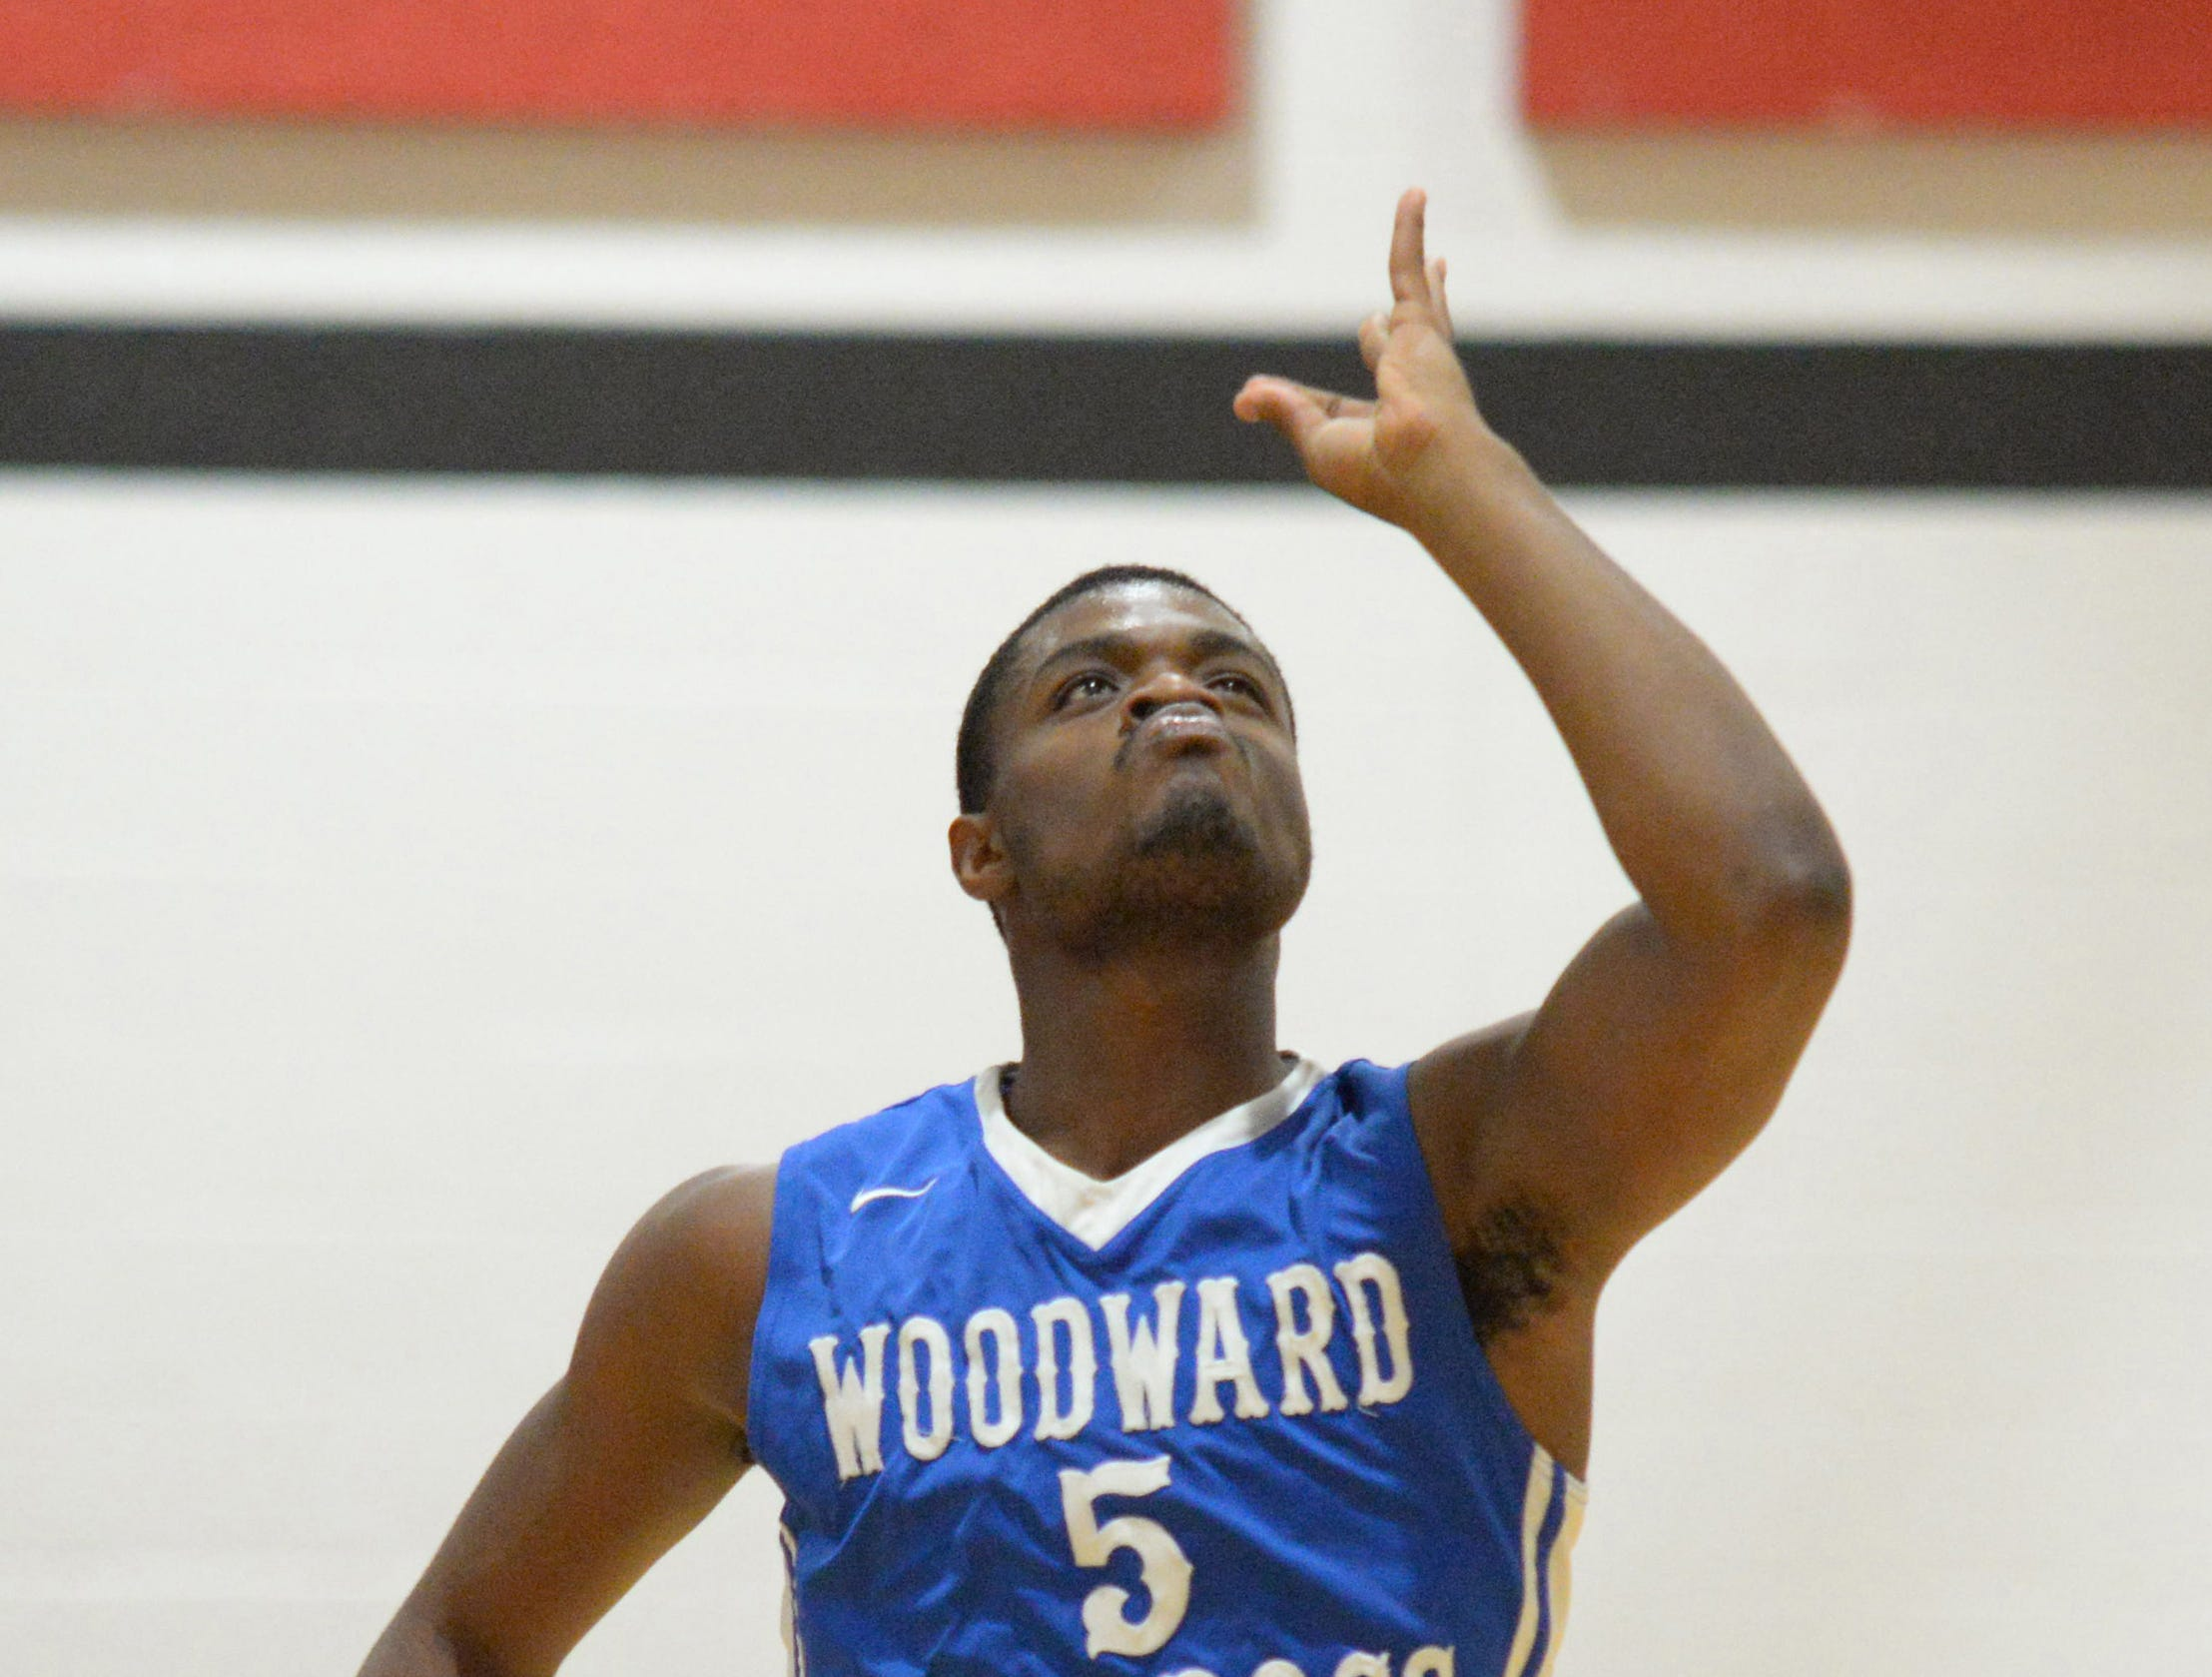 Woodward forward Terry Durham celebrates after making a three-pointer against Hughes at Hughes High School, Friday, Jan. 19, 2018.